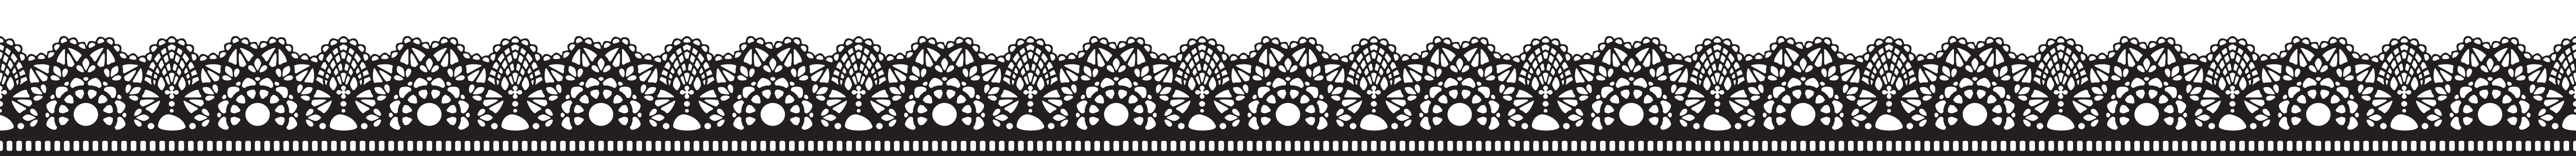 Clip art gallery yopriceville. Lace border png